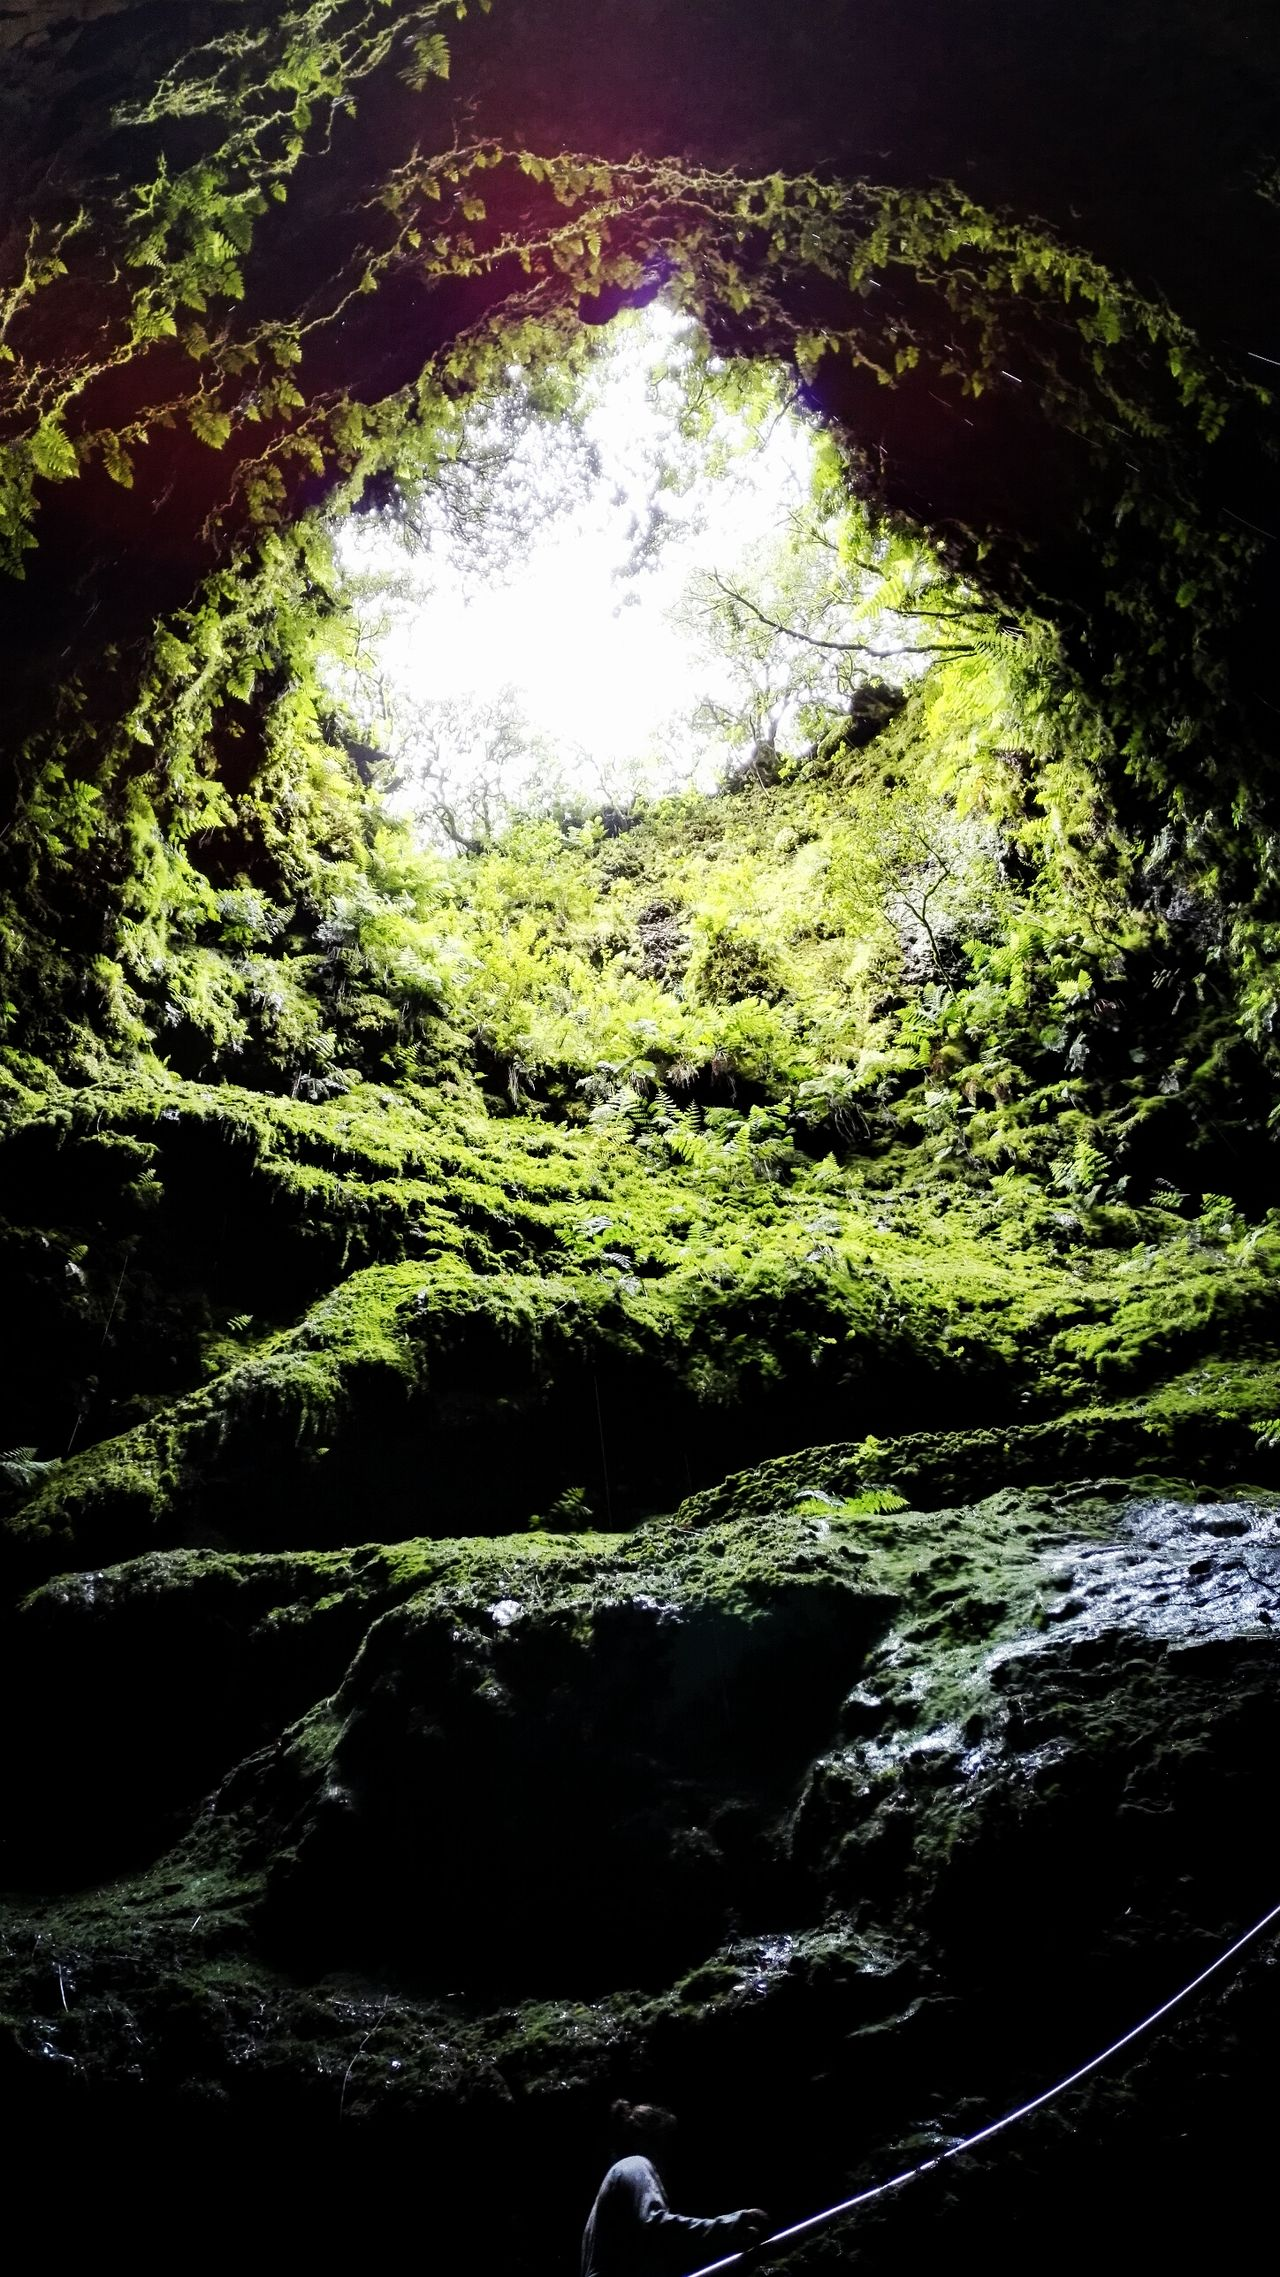 EyeEmBestPics Azoren Naturelovers EyeEm Best Shots - Nature EyeEm Best Shots Showcase July Myphotooftheday Eye4photography  Hiking Nature Photography Vulcanic Landscape EyeEm Nature Lover Green Tropfsteinhöhle Cave Caves Photography Terceira Island Low Angle View Fine Art Photography Light And Shadow Sky Azores Colour Of Life The Magic Mission Dramatic Angles